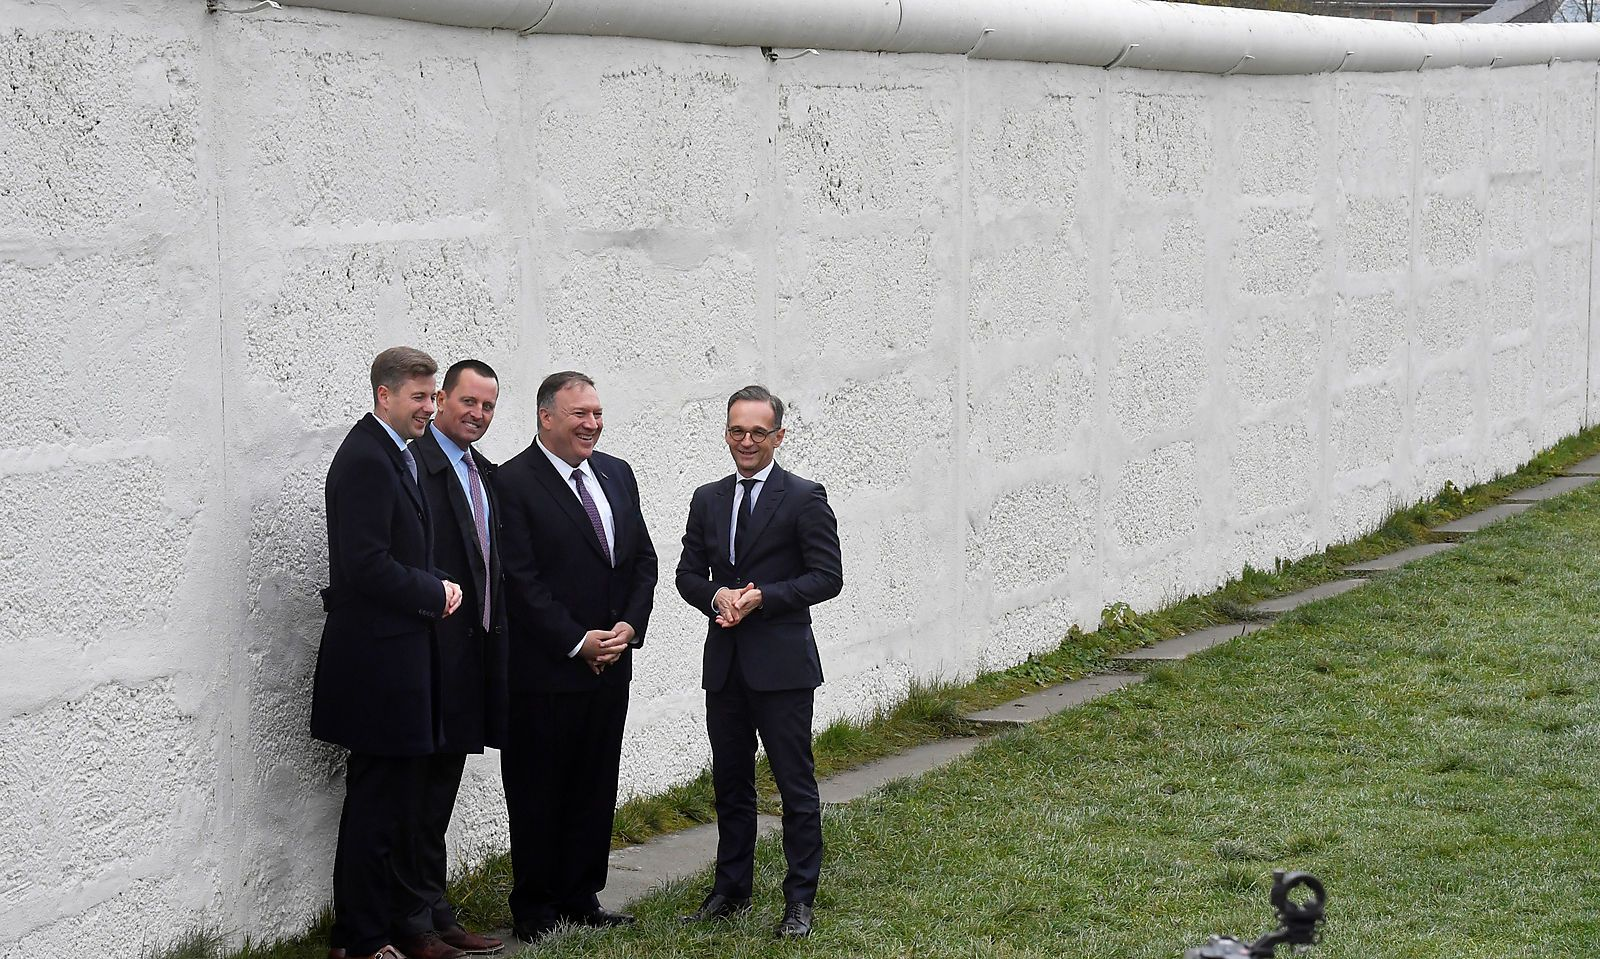 U.S. Secretary of State Mike Pompeo and his German counterpart Heiko Maas visit the village of Moedlareuth